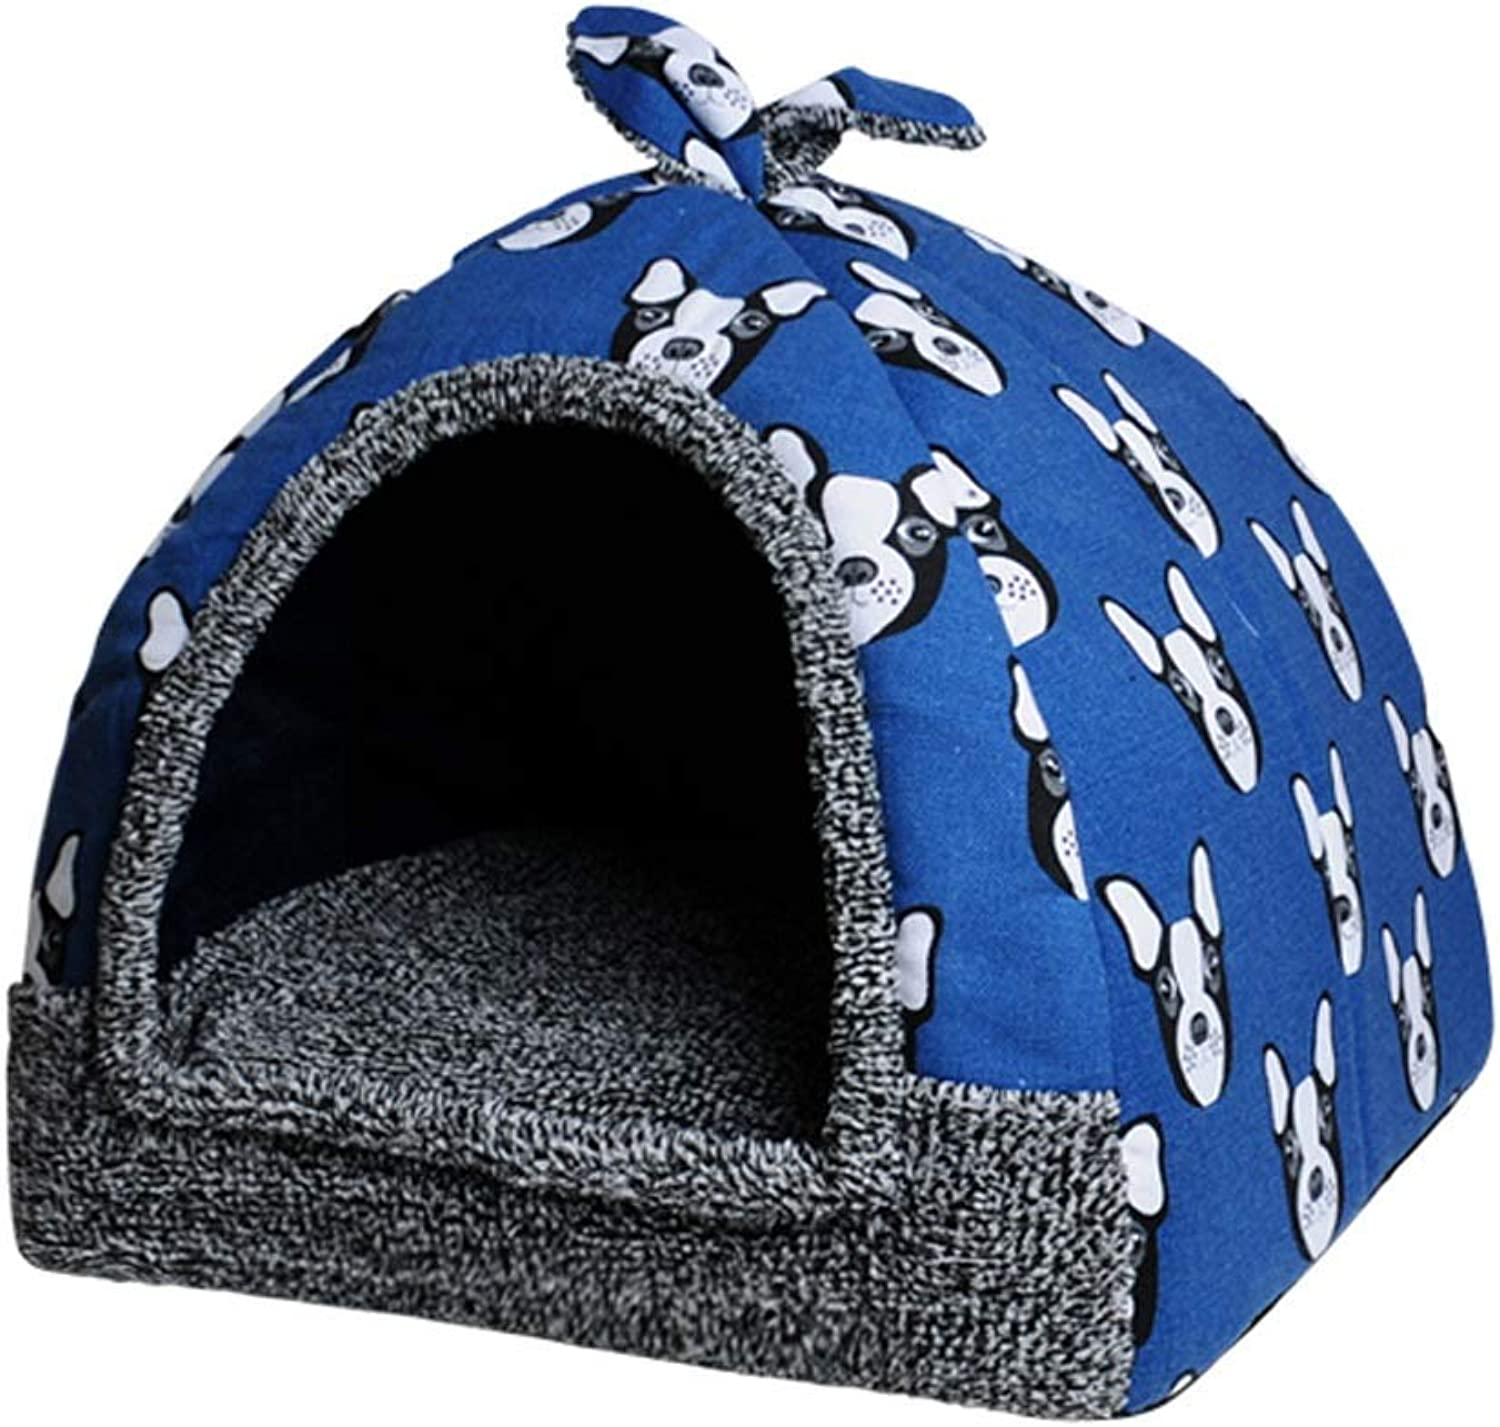 Pet Bed 2 in 1 Kennel Cat Litter Small Dog Pet Cat 4 Seasons Universal Sleeping Bag Supplies Winter Warm Winter Washable (color   B, Size   Small)